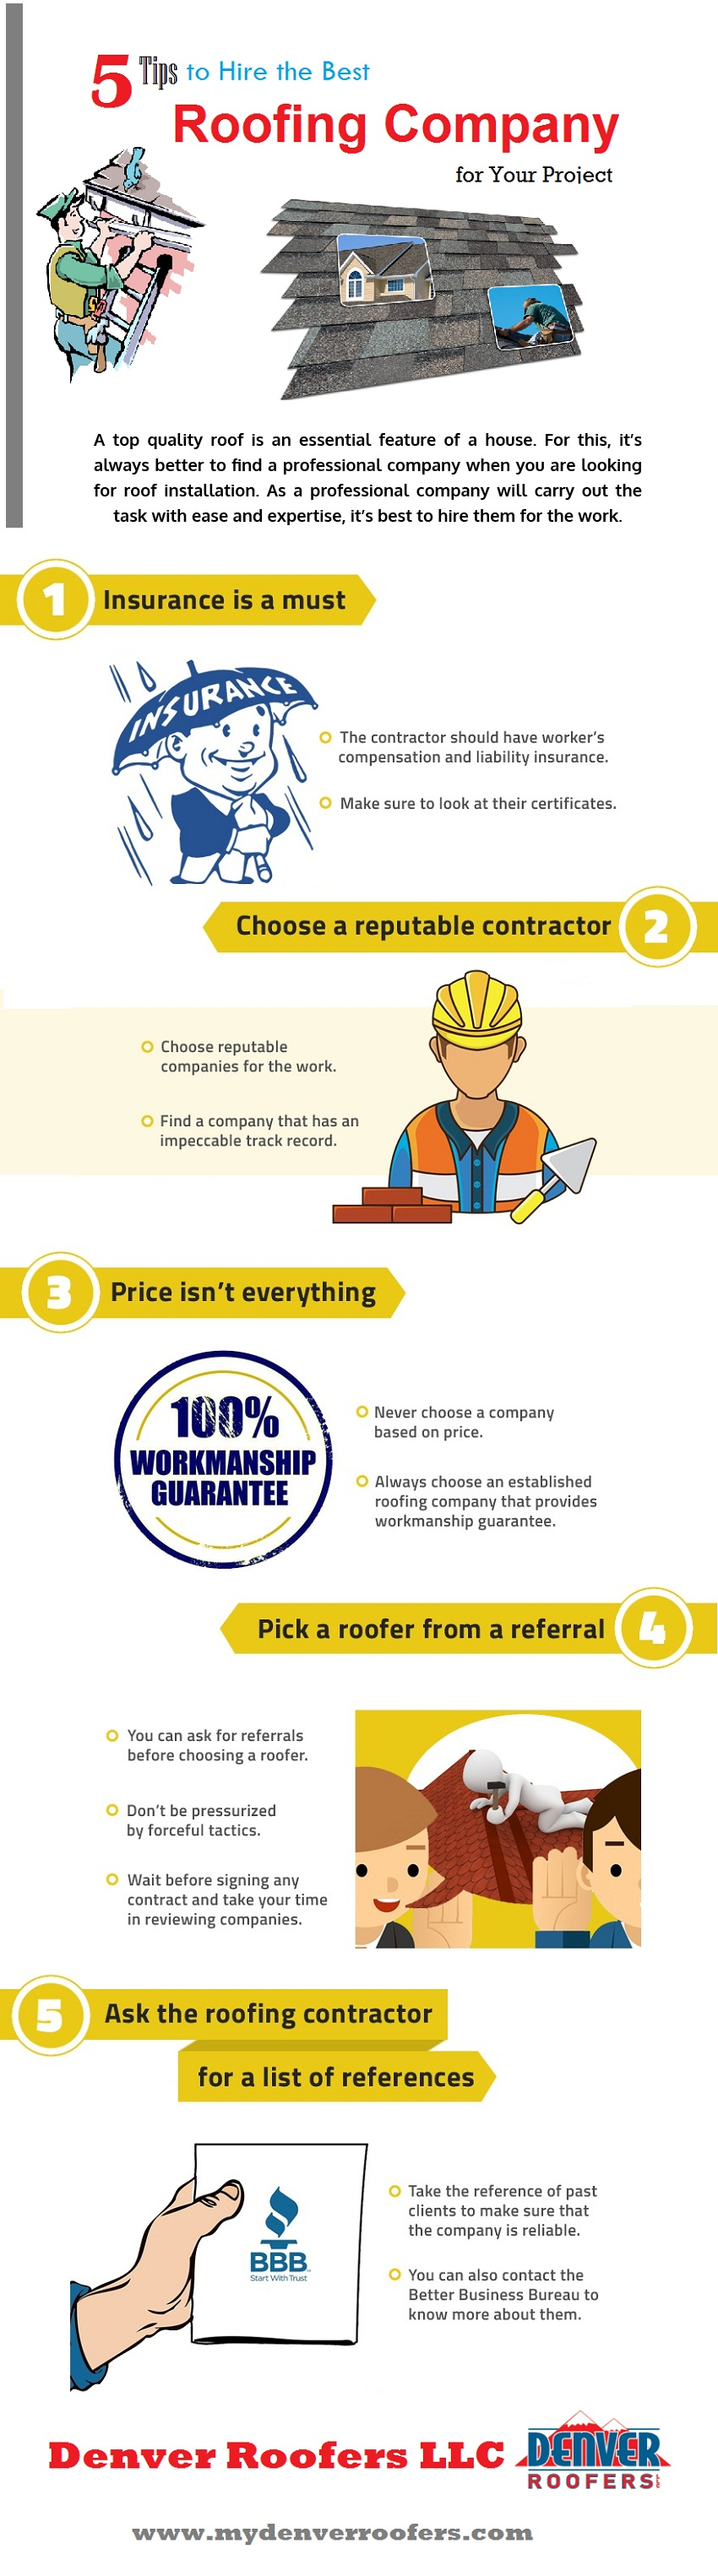 5 Tips To Hire The Best Roofing Company For Your Project